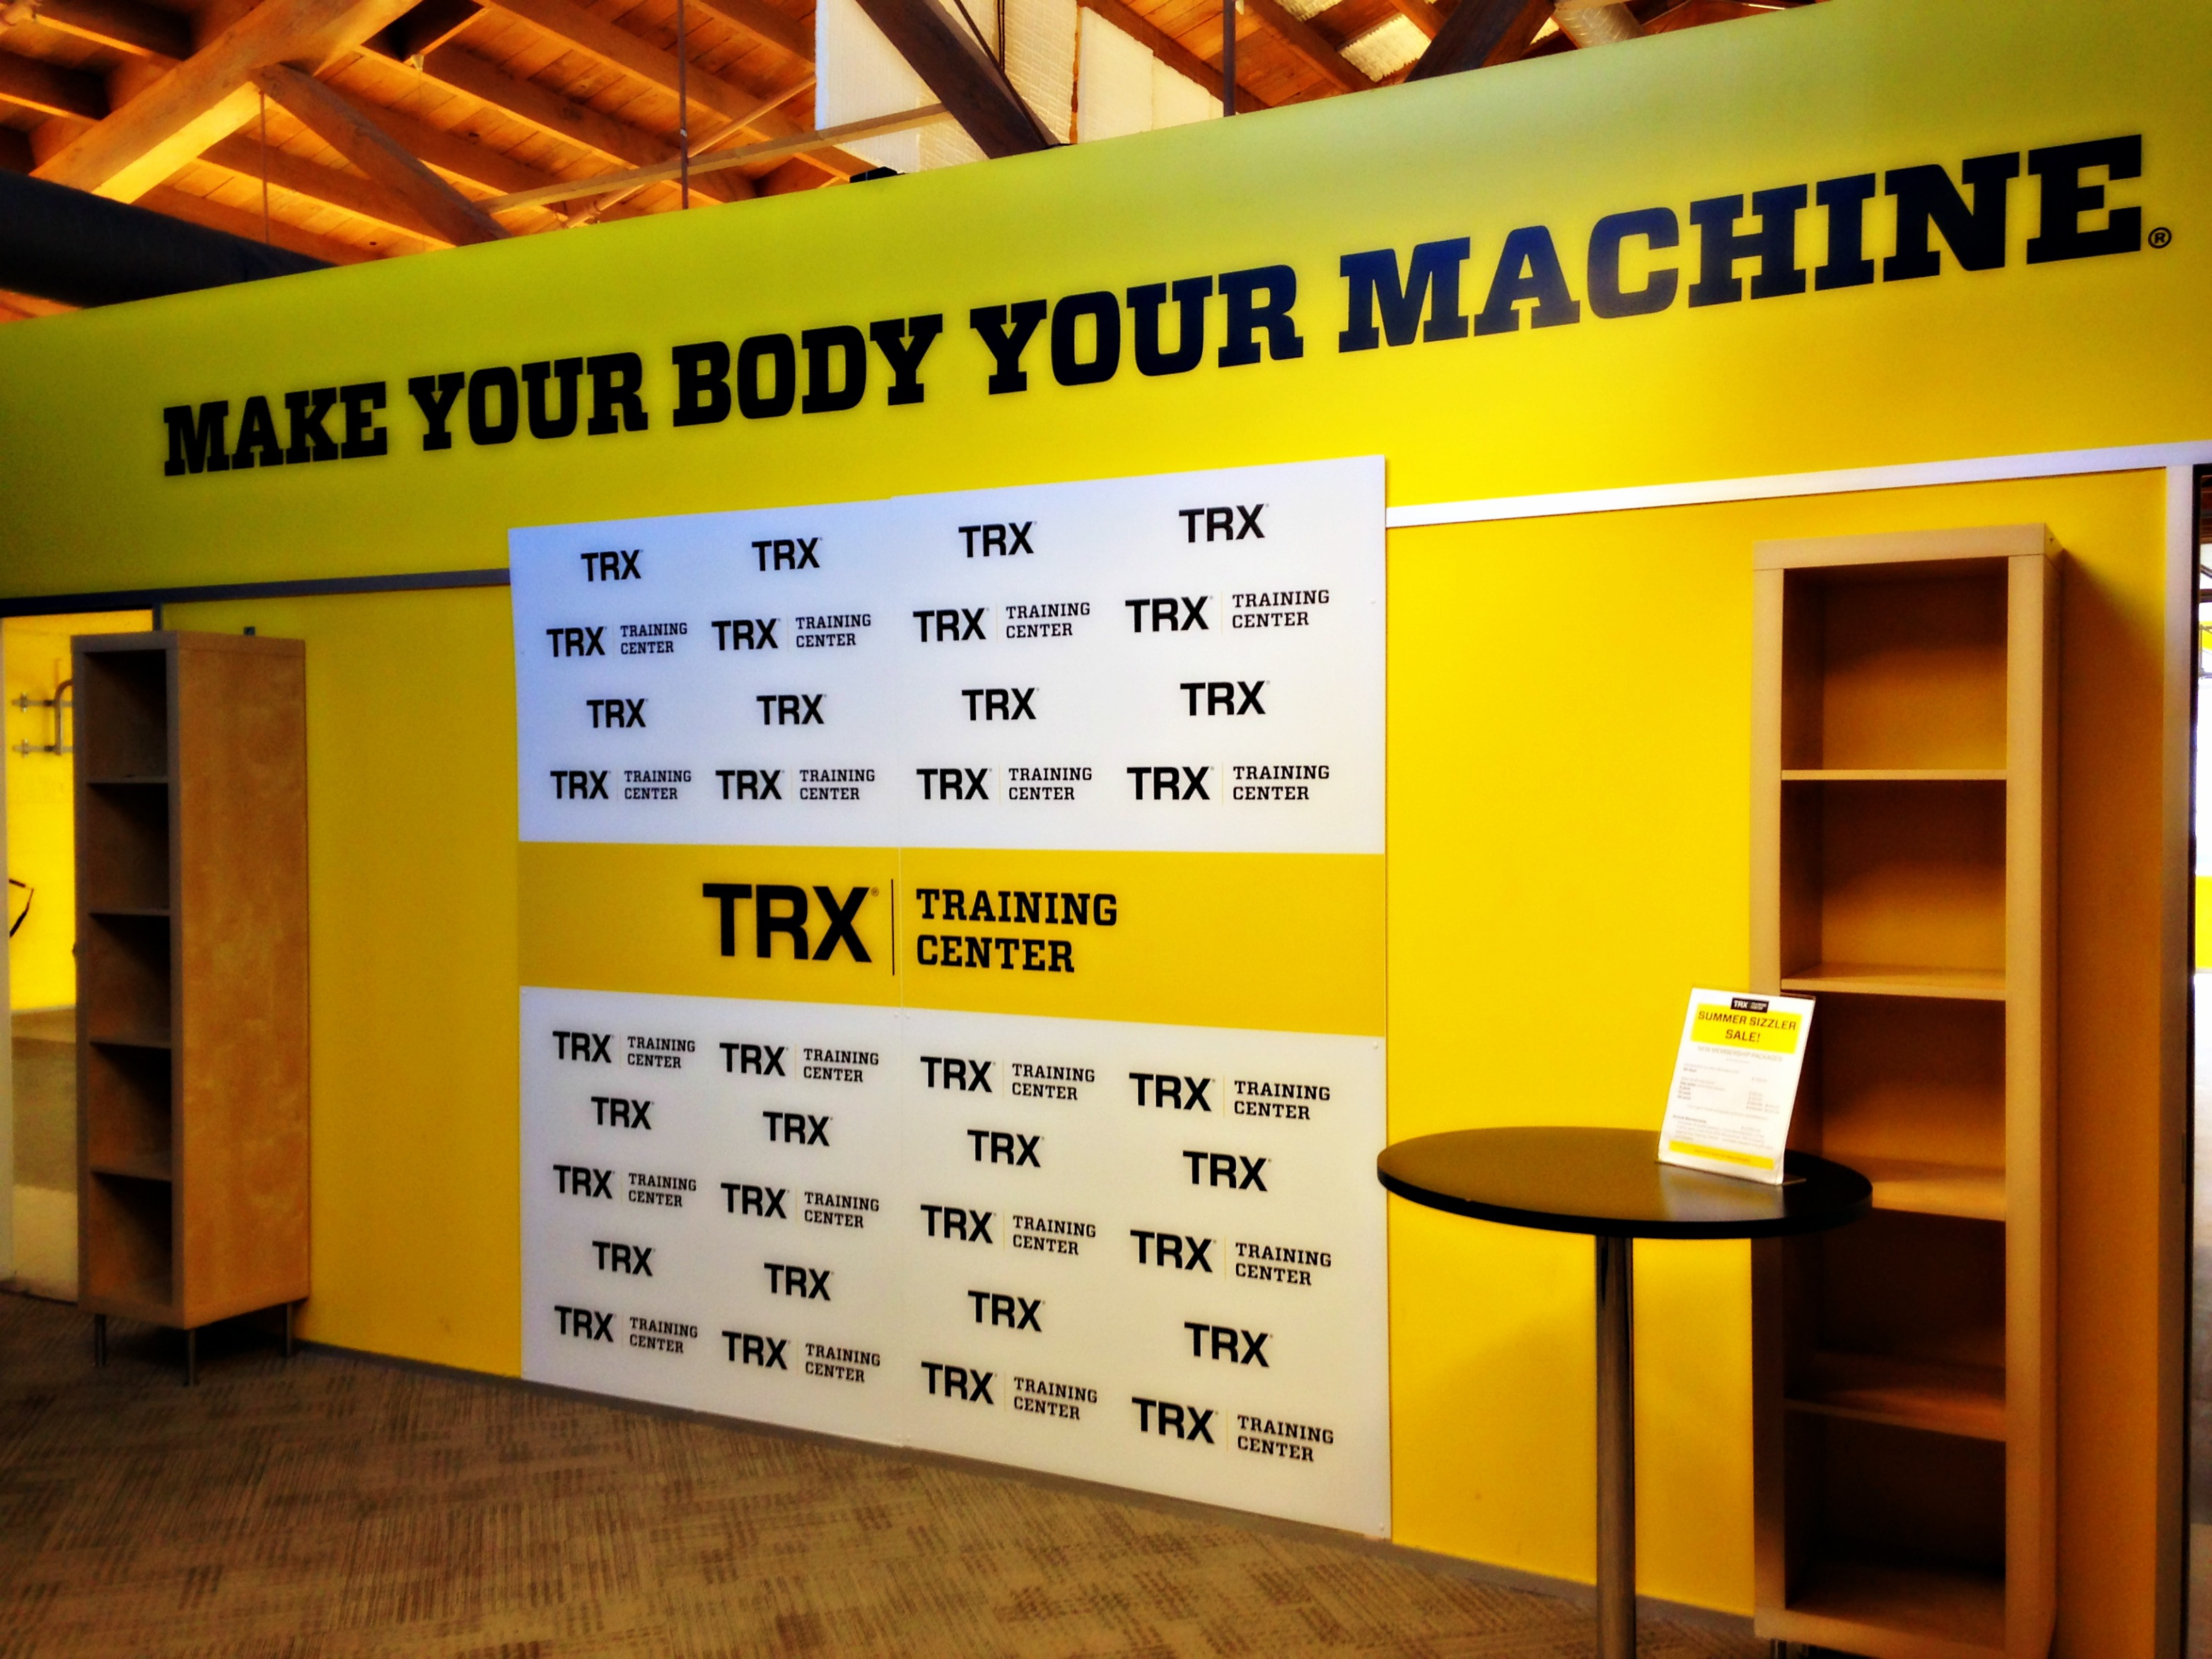 TRX step and repeat